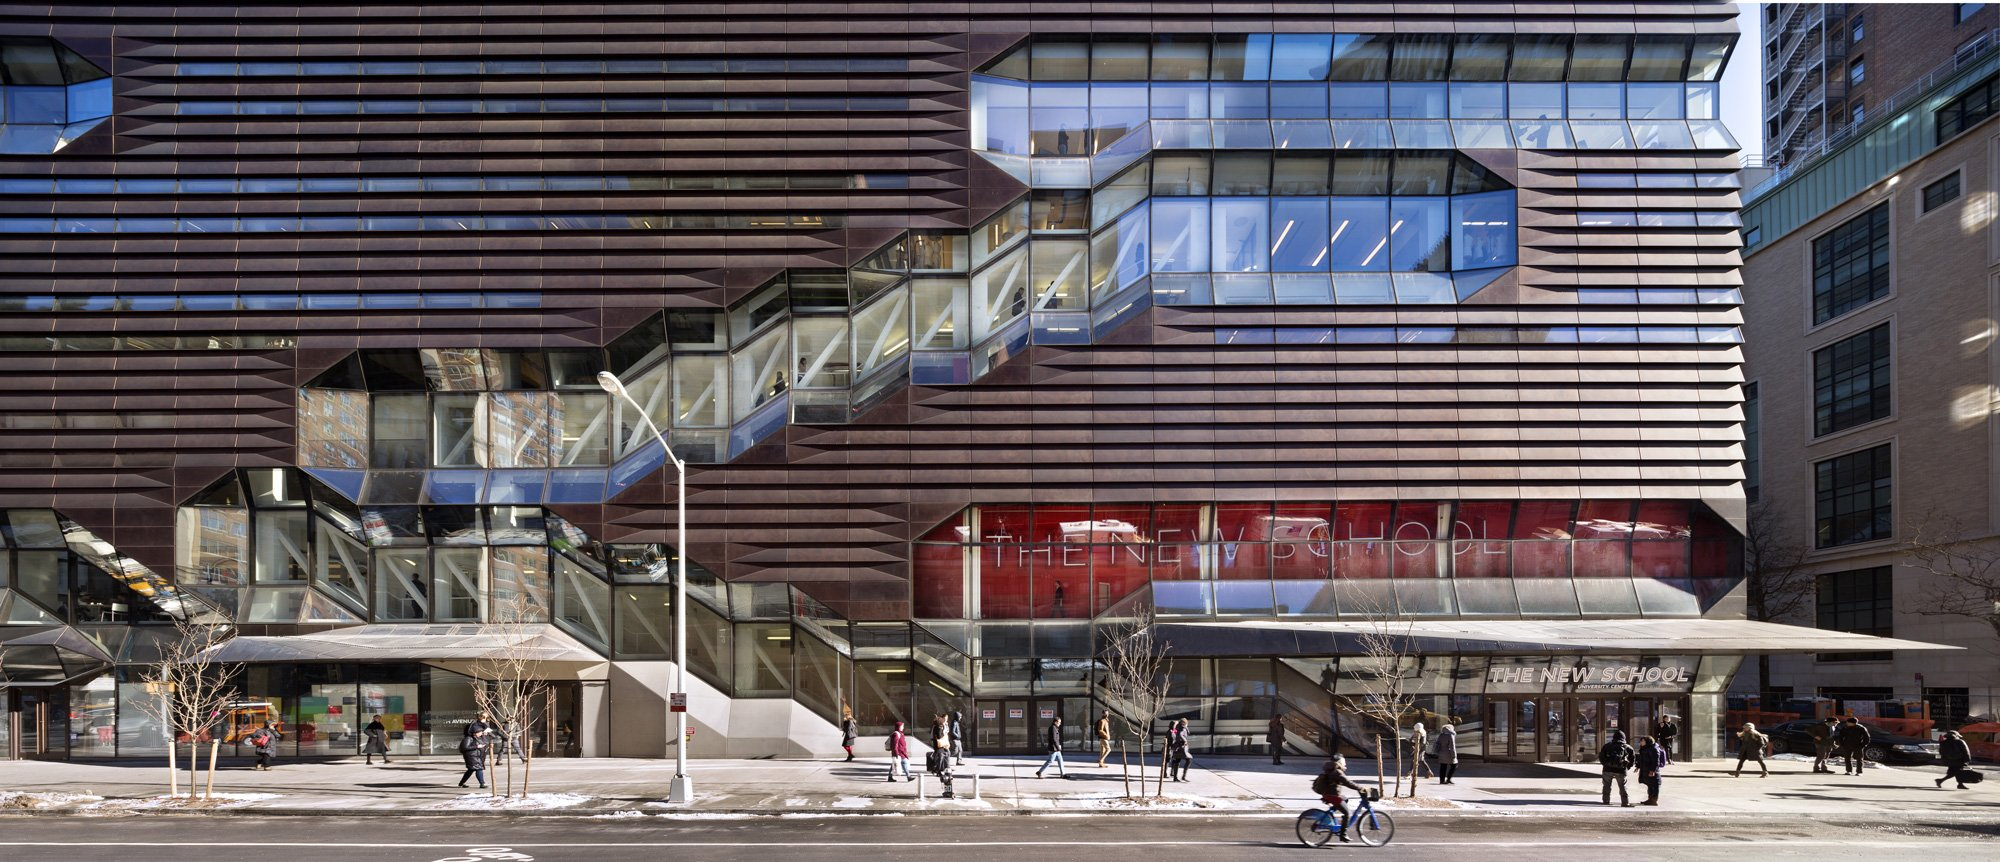 University Center, The New School, Skidmore, Owings & Merrill © James Ewing